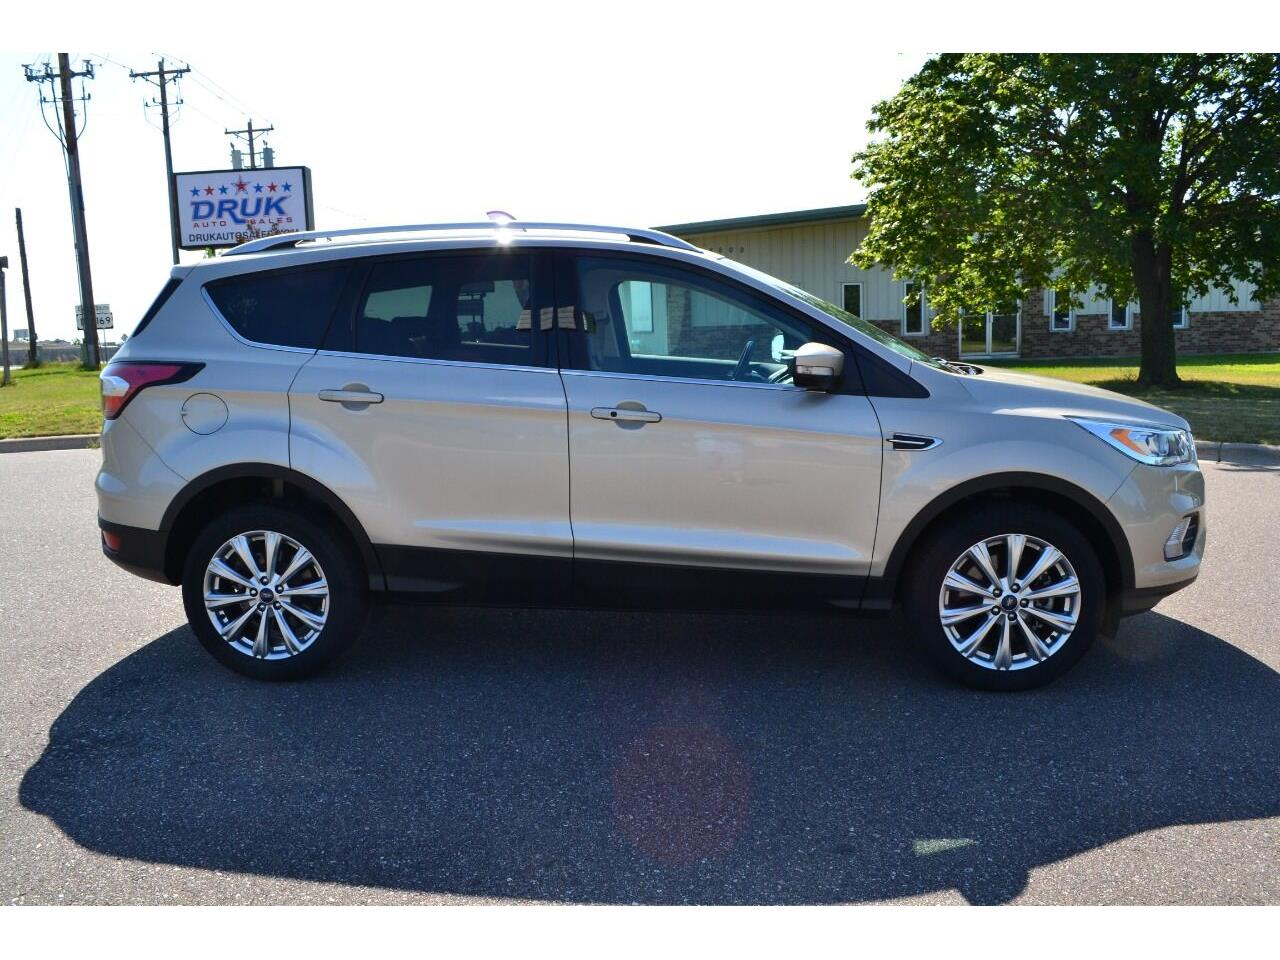 2017 Ford Escape (CC-1367478) for sale in Ramsey, Minnesota